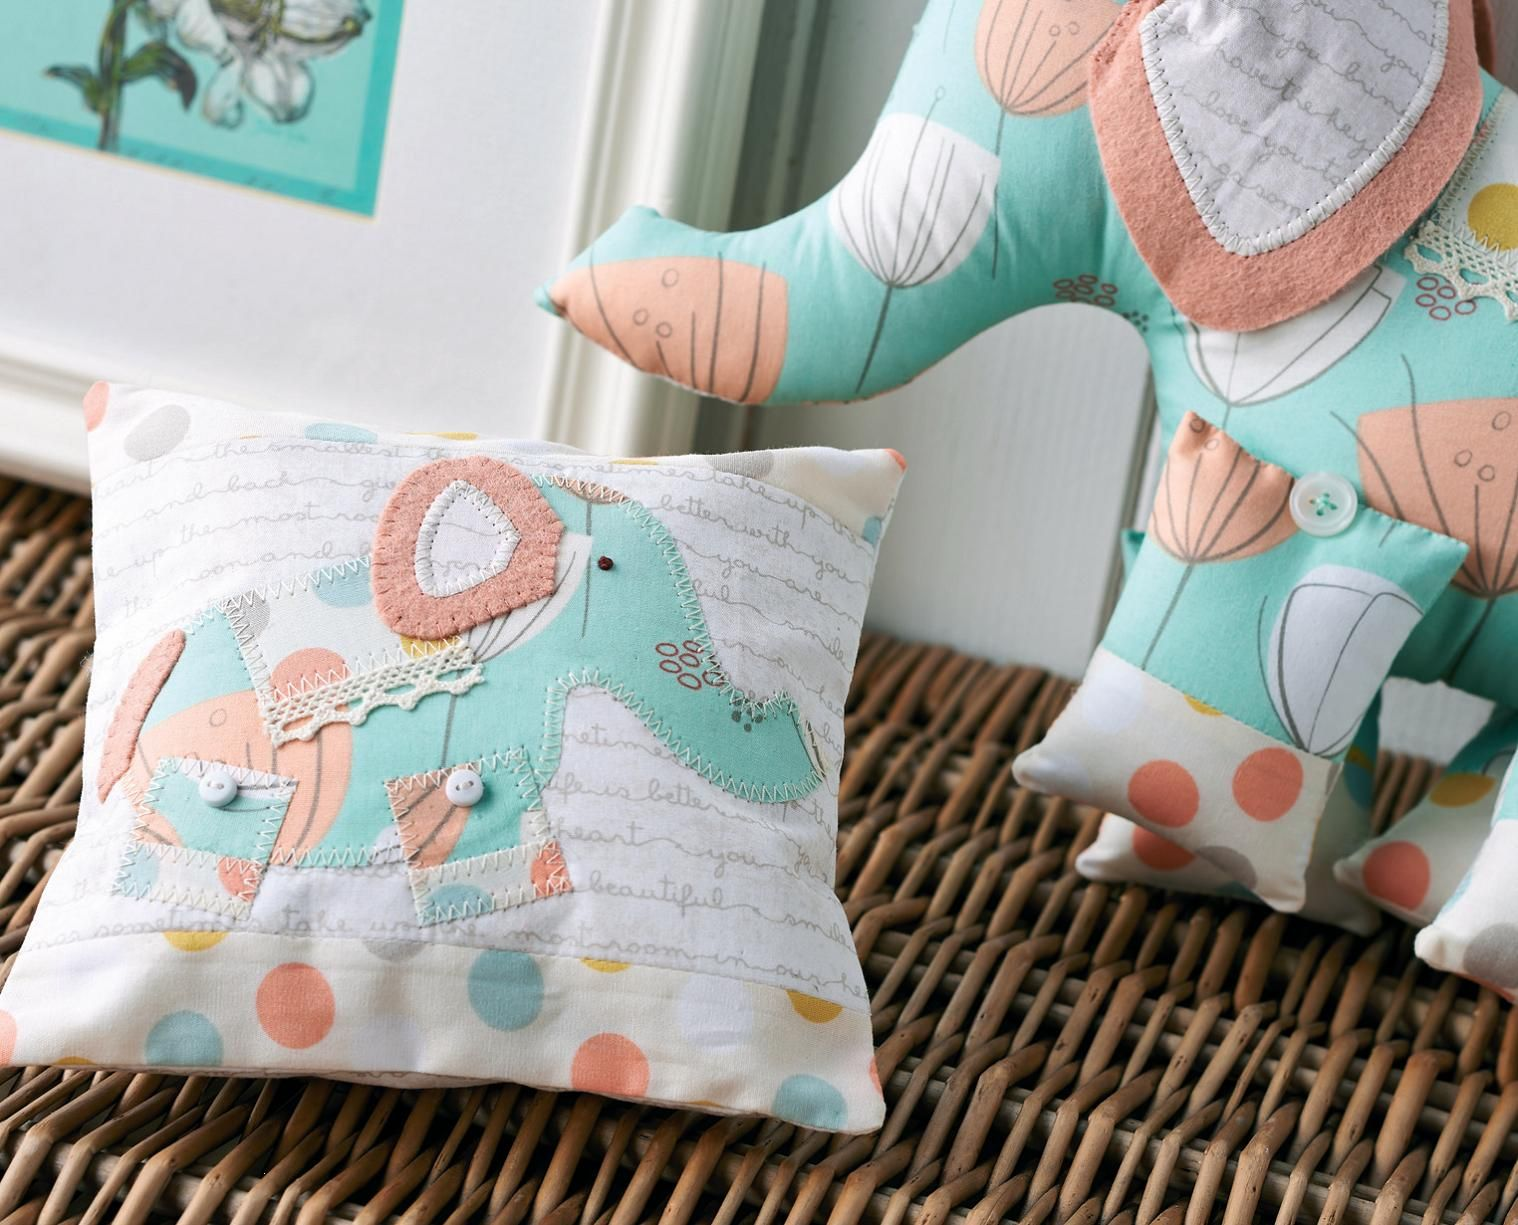 Art gallery fabric elephant and pillow you can join for free and art gallery fabric elephant and pillow free sewing patterns sew magazine jeuxipadfo Gallery